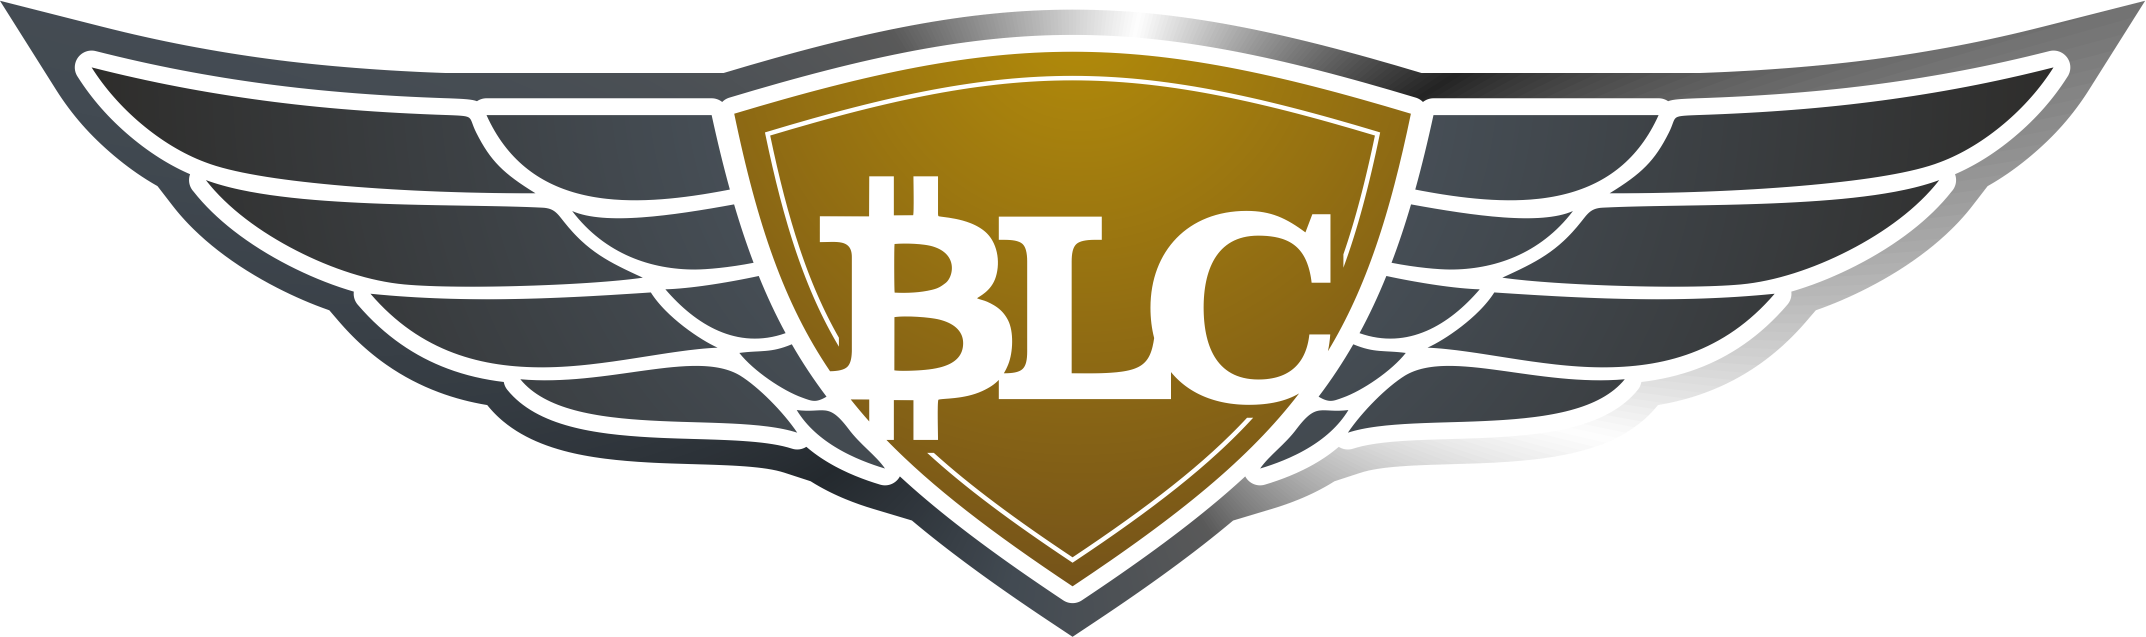 Welcome To Bitcoin Lifestyles Club! – Premium – BTC